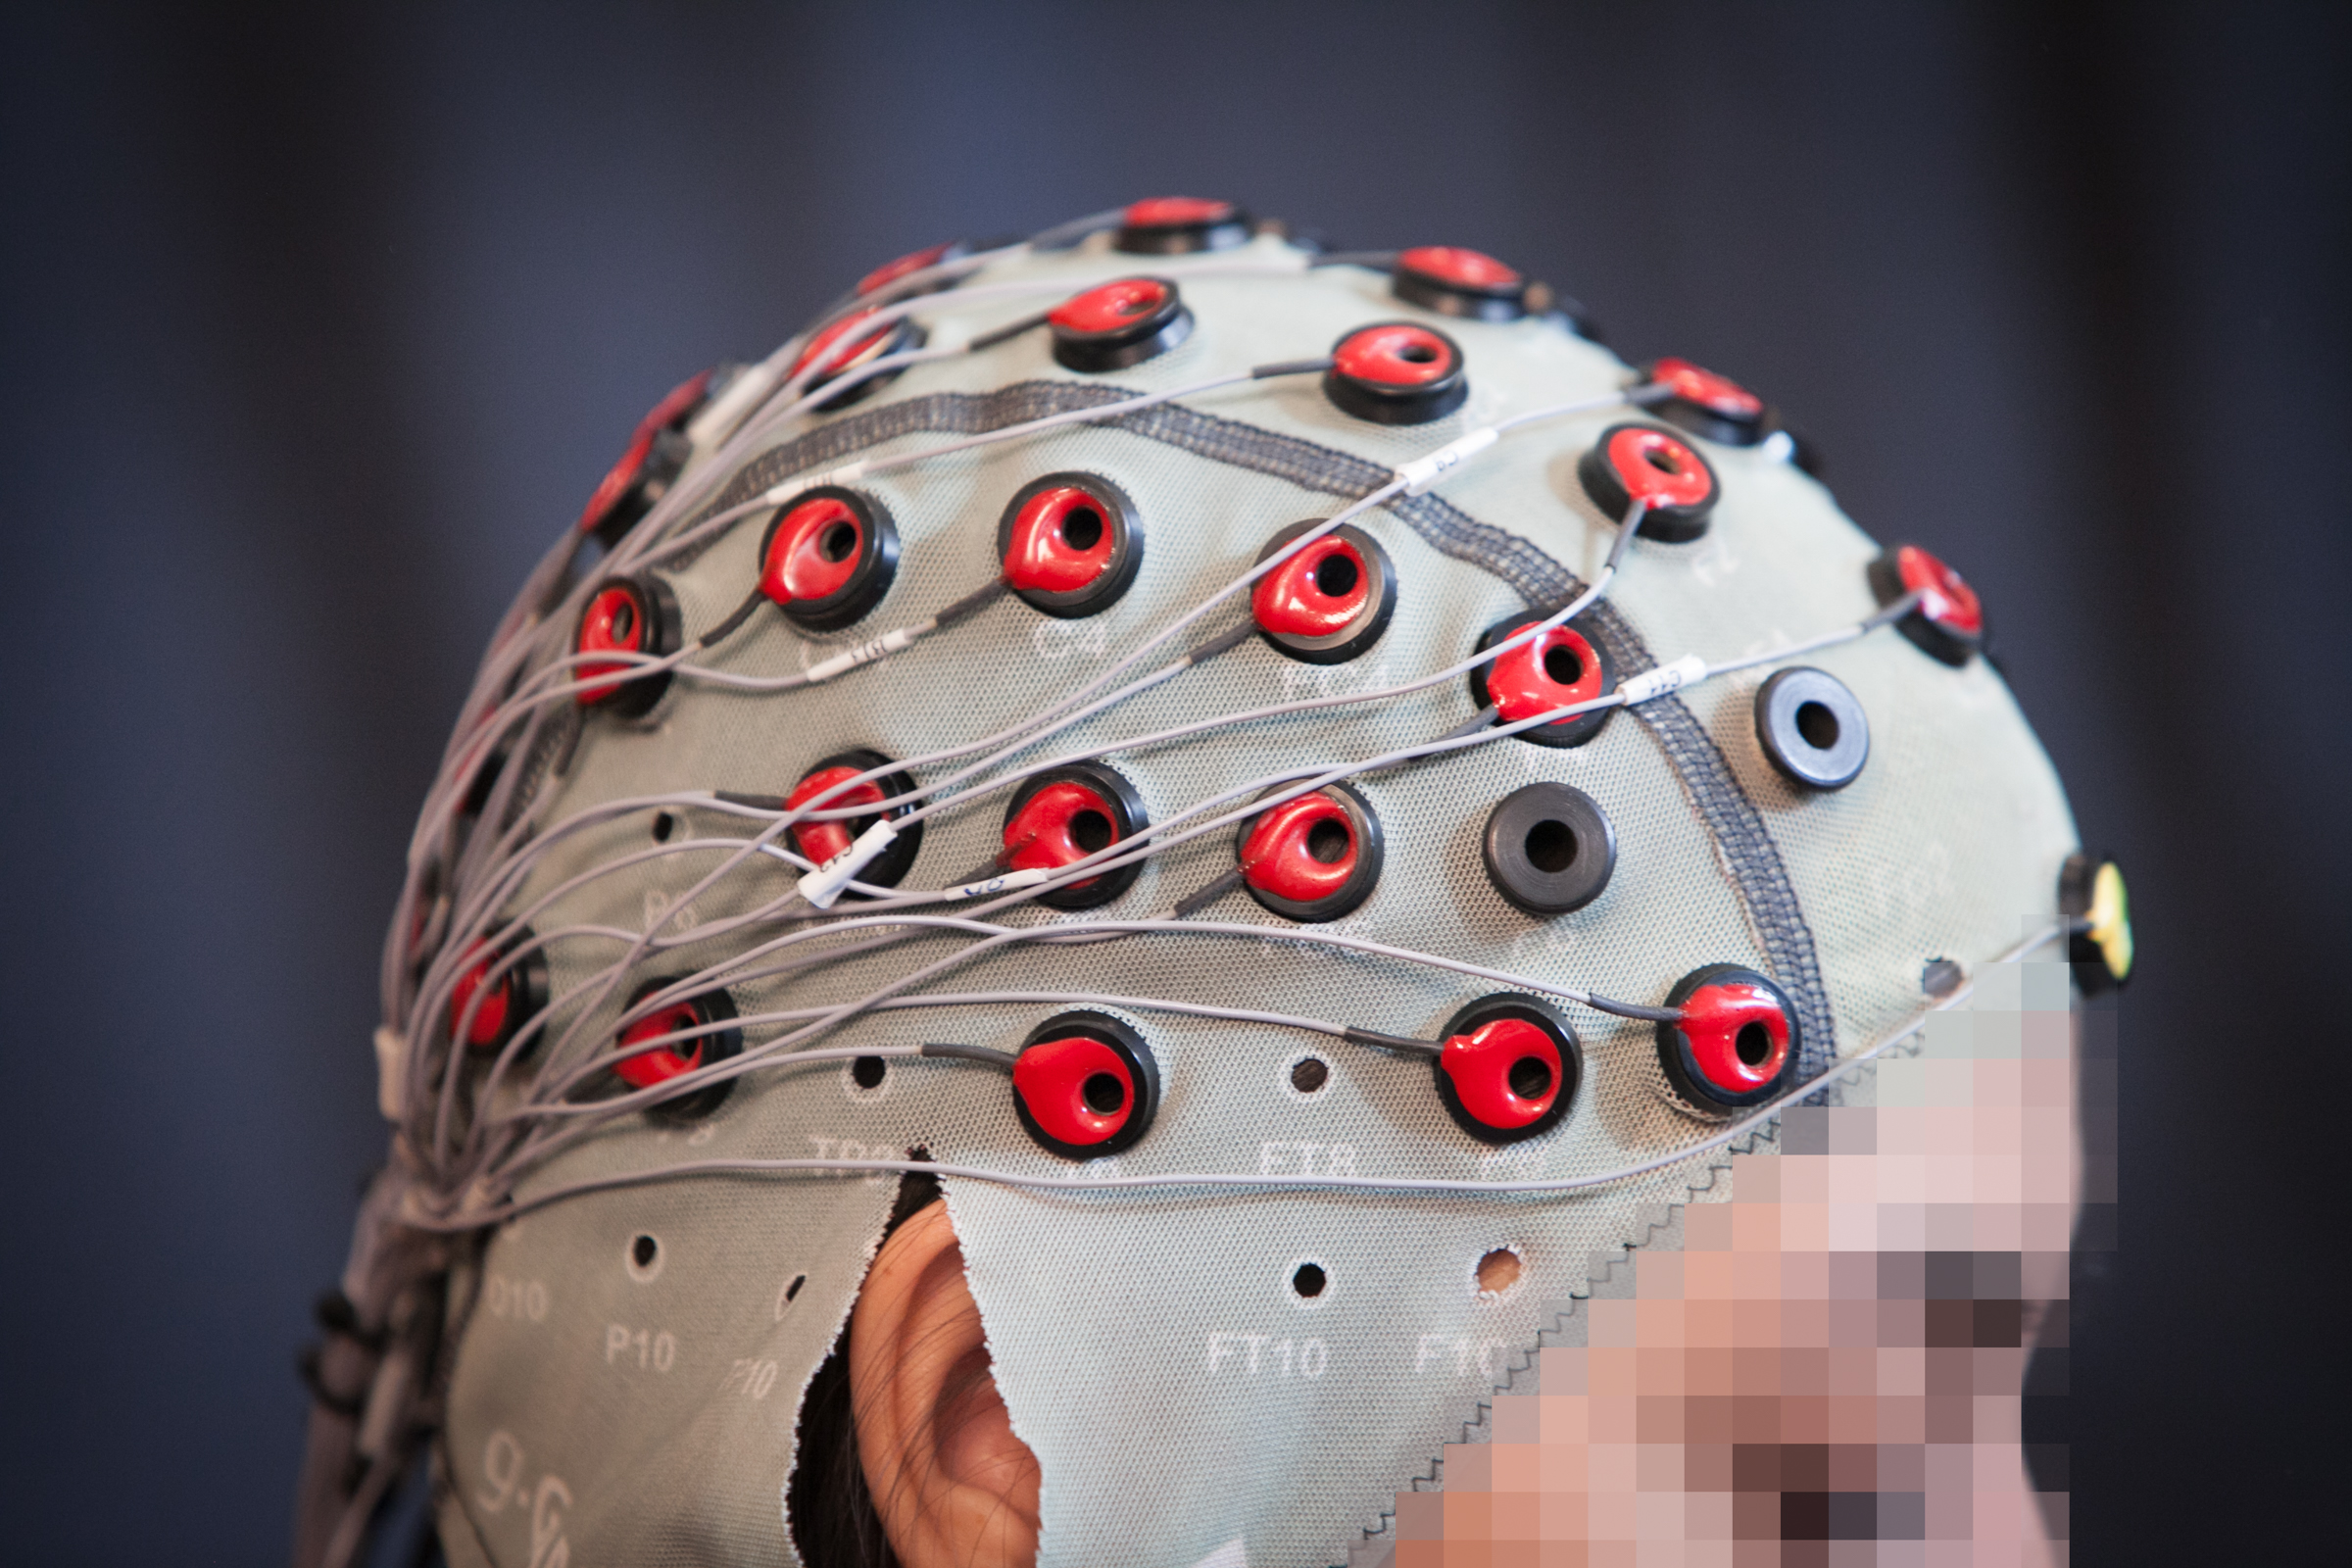 2the-team-uses-eeg-brain-signals-to-detect-if-the-person-notices-a-mistake-jason-dorfman-mit-csail